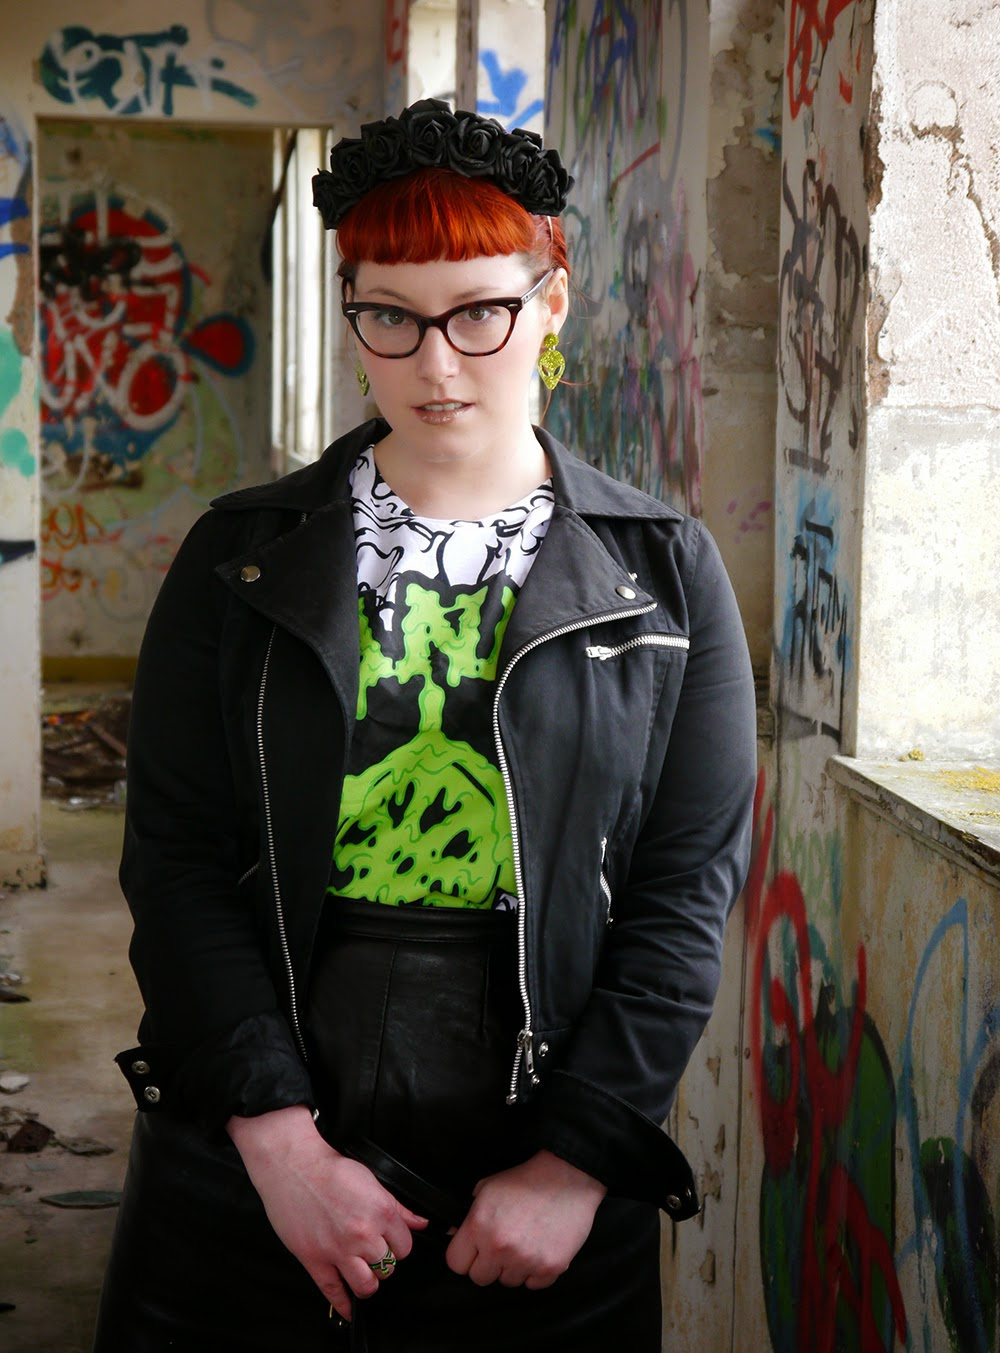 Styled by Helen, space style, scottish blogger, red head, ginger, Abandon Ship, Abandon Ship Apparel, slim tshirt, H&M biker jacekt, Sugar and Vice, Sugar & Vice, Alien earrings, alien style, outerspace styling, Carnabys, vintage leather skirt, Youth Rise Up, skeleton slippers, skeleton shoes, bone shoes, Accessorize, camera shaped bag, Crown & Glory, black flower crown